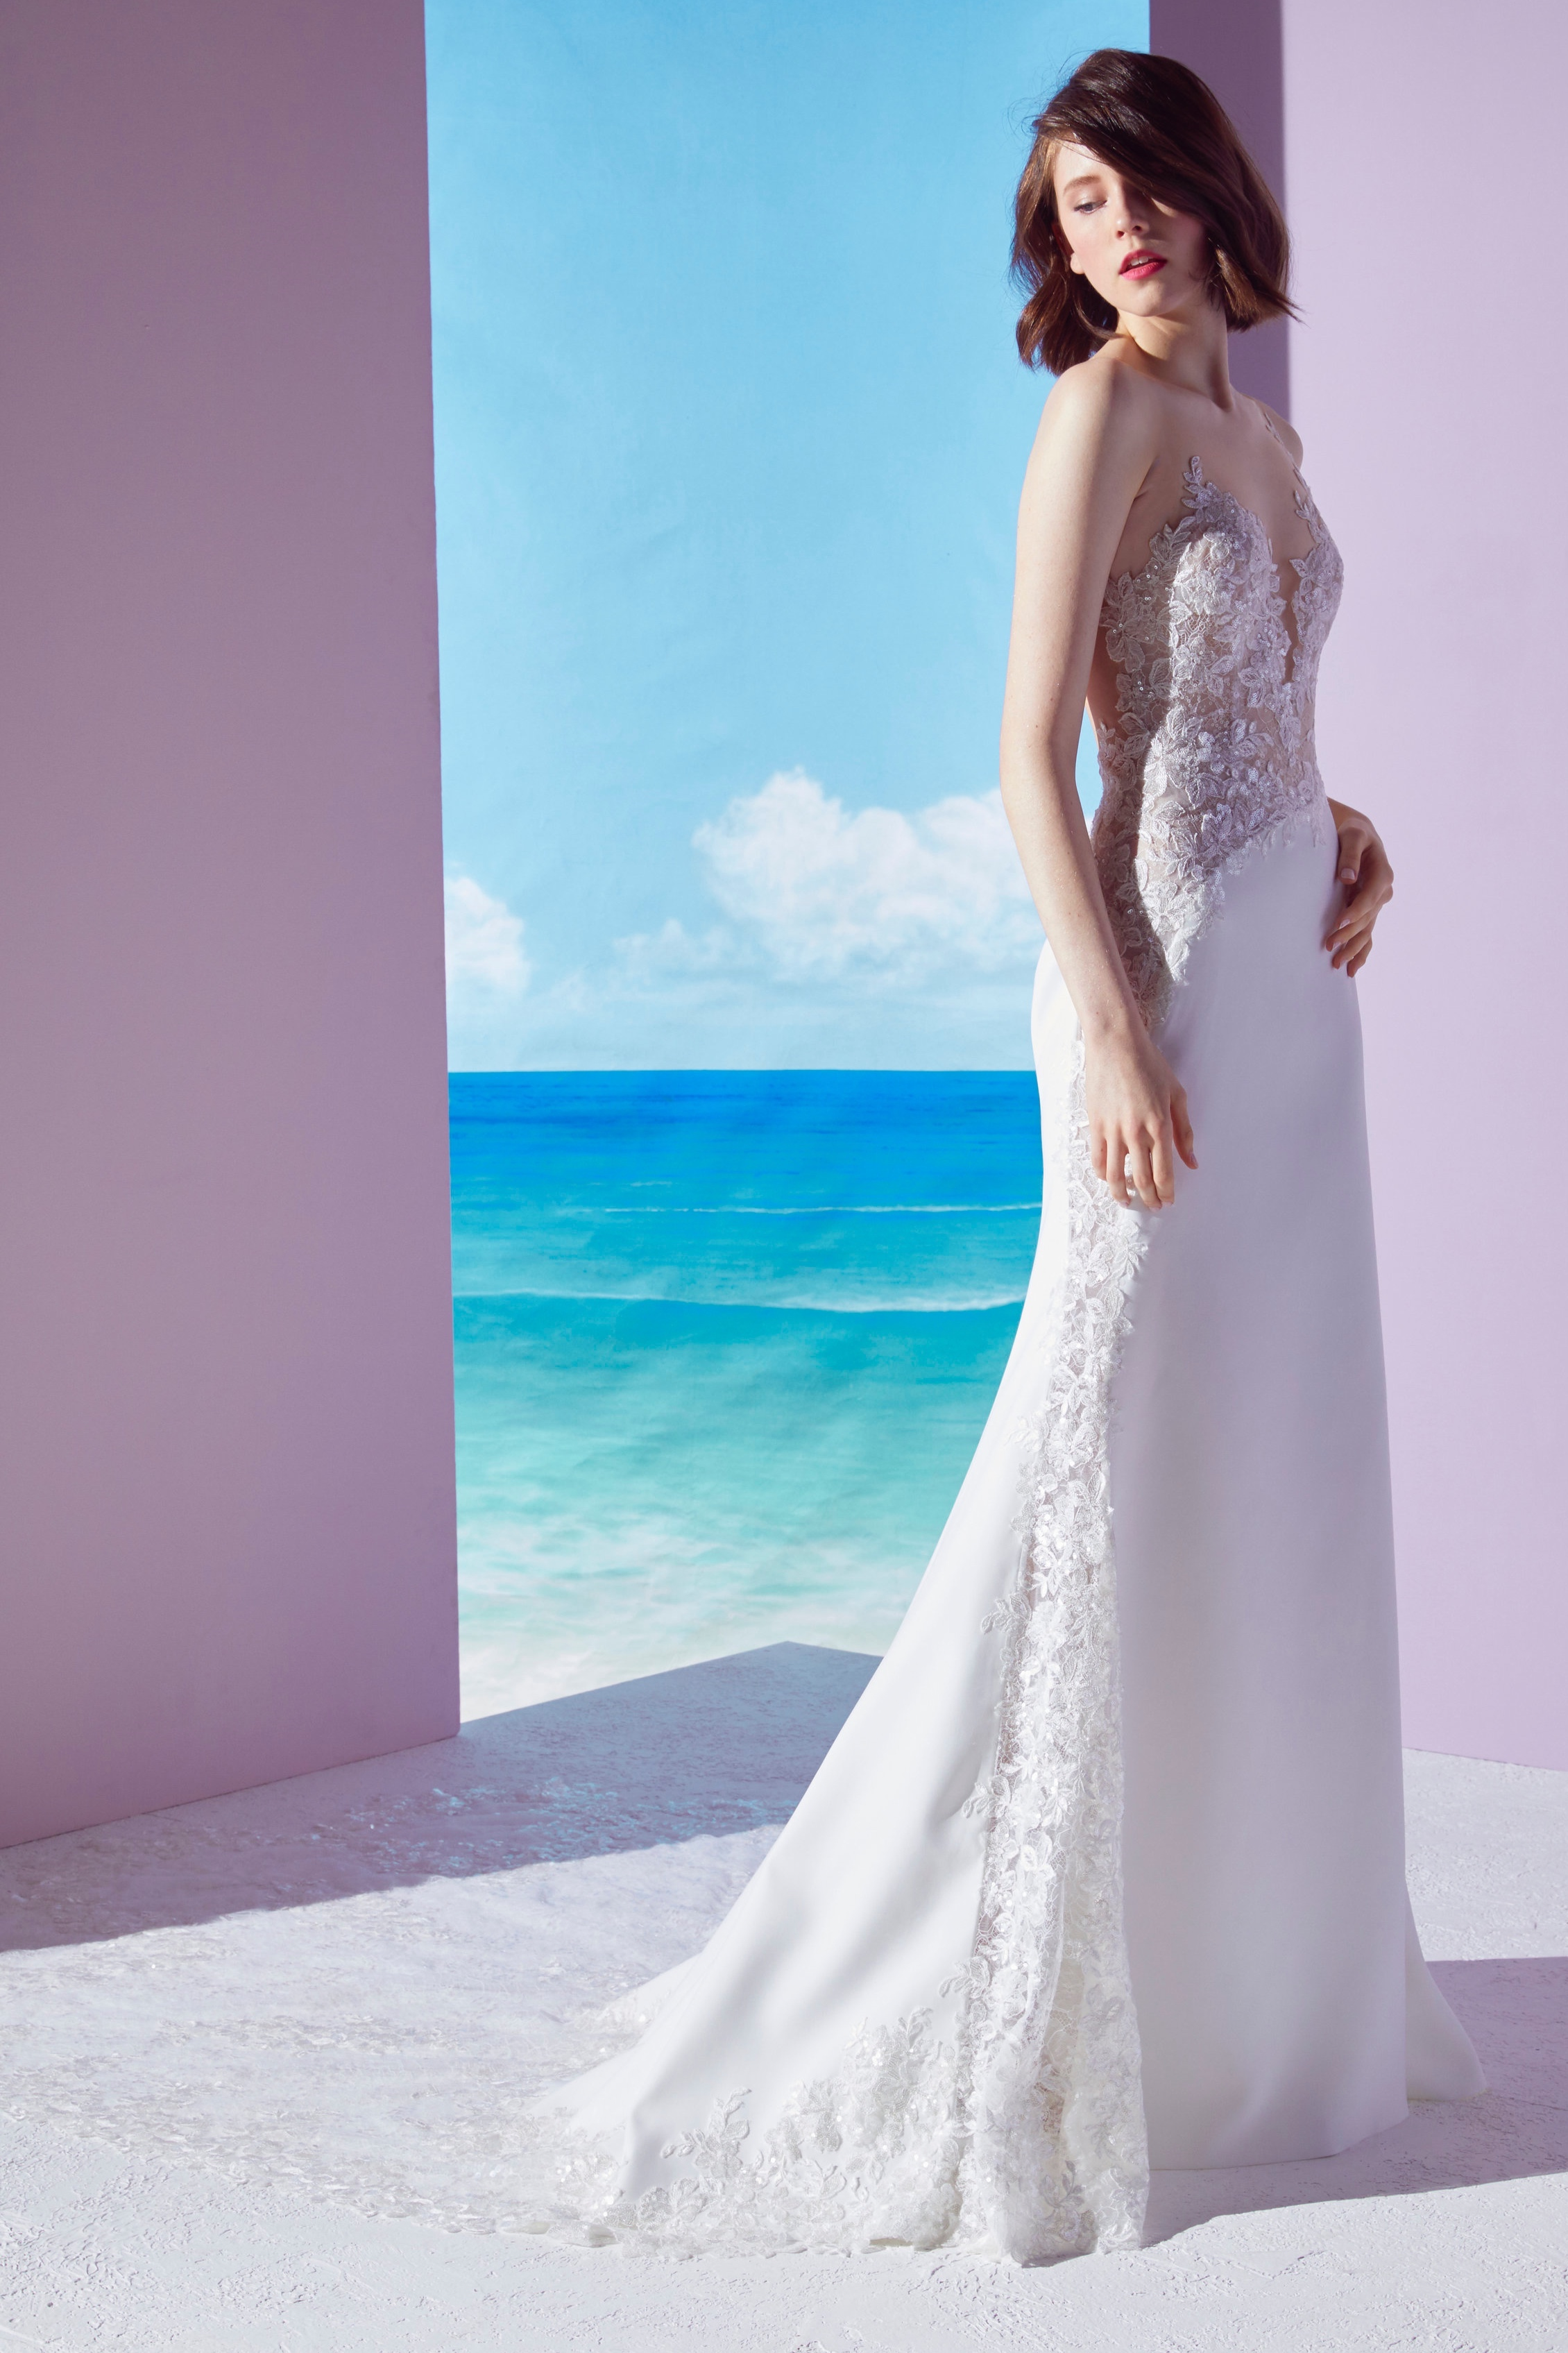 Ines by Ines Di Santo Bridal Spring 2019   MISHA    INQUIRE